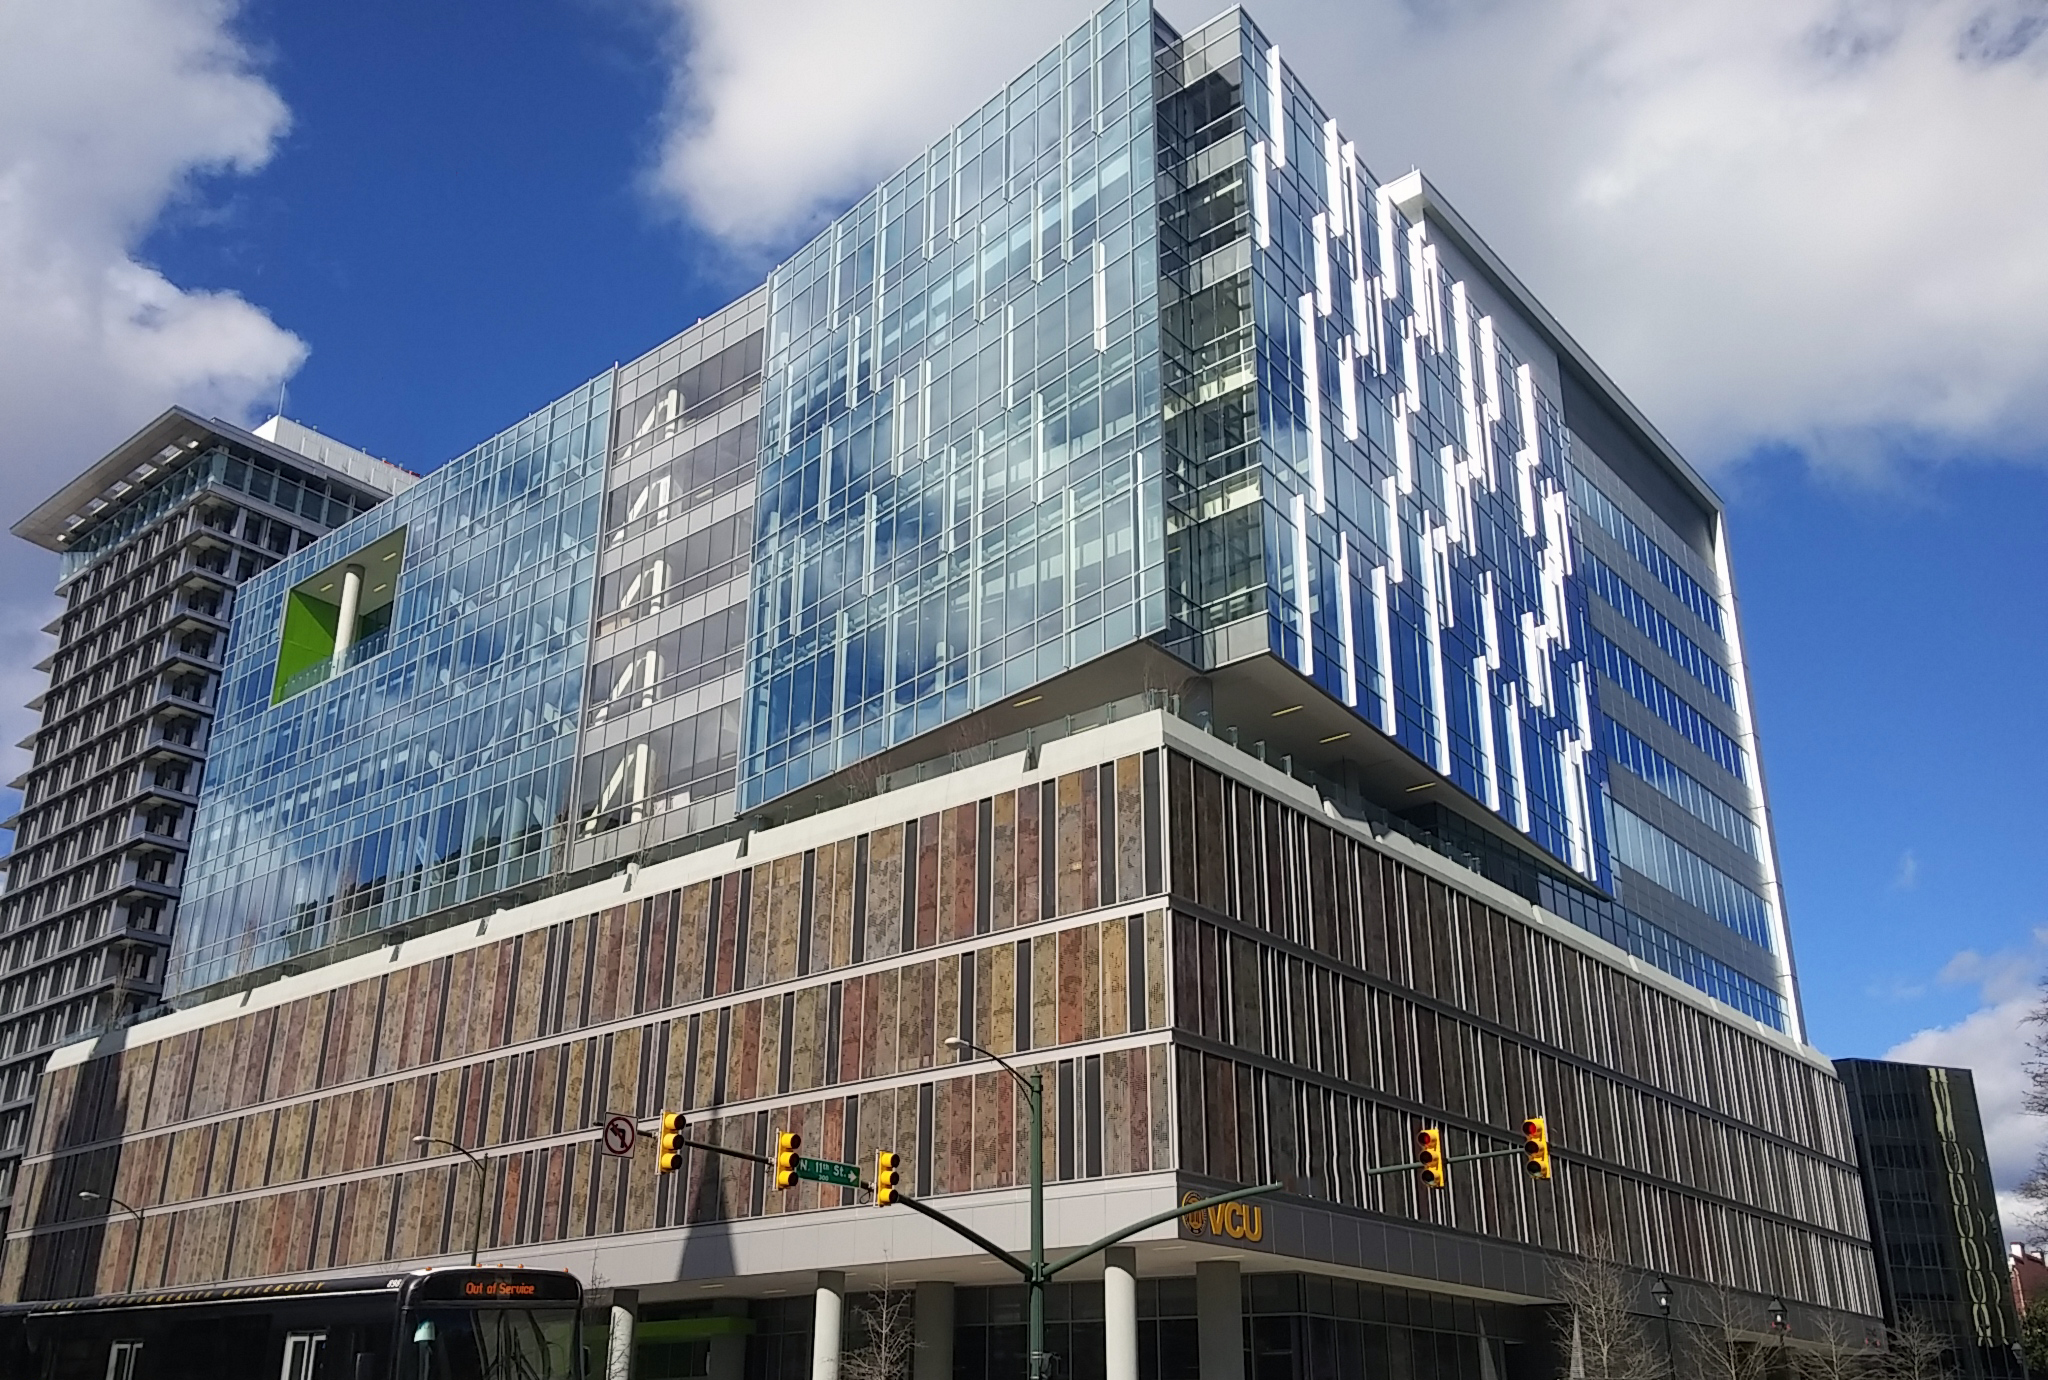 The Children's Hospital of Richmond Pavilion at VCU Wins Top